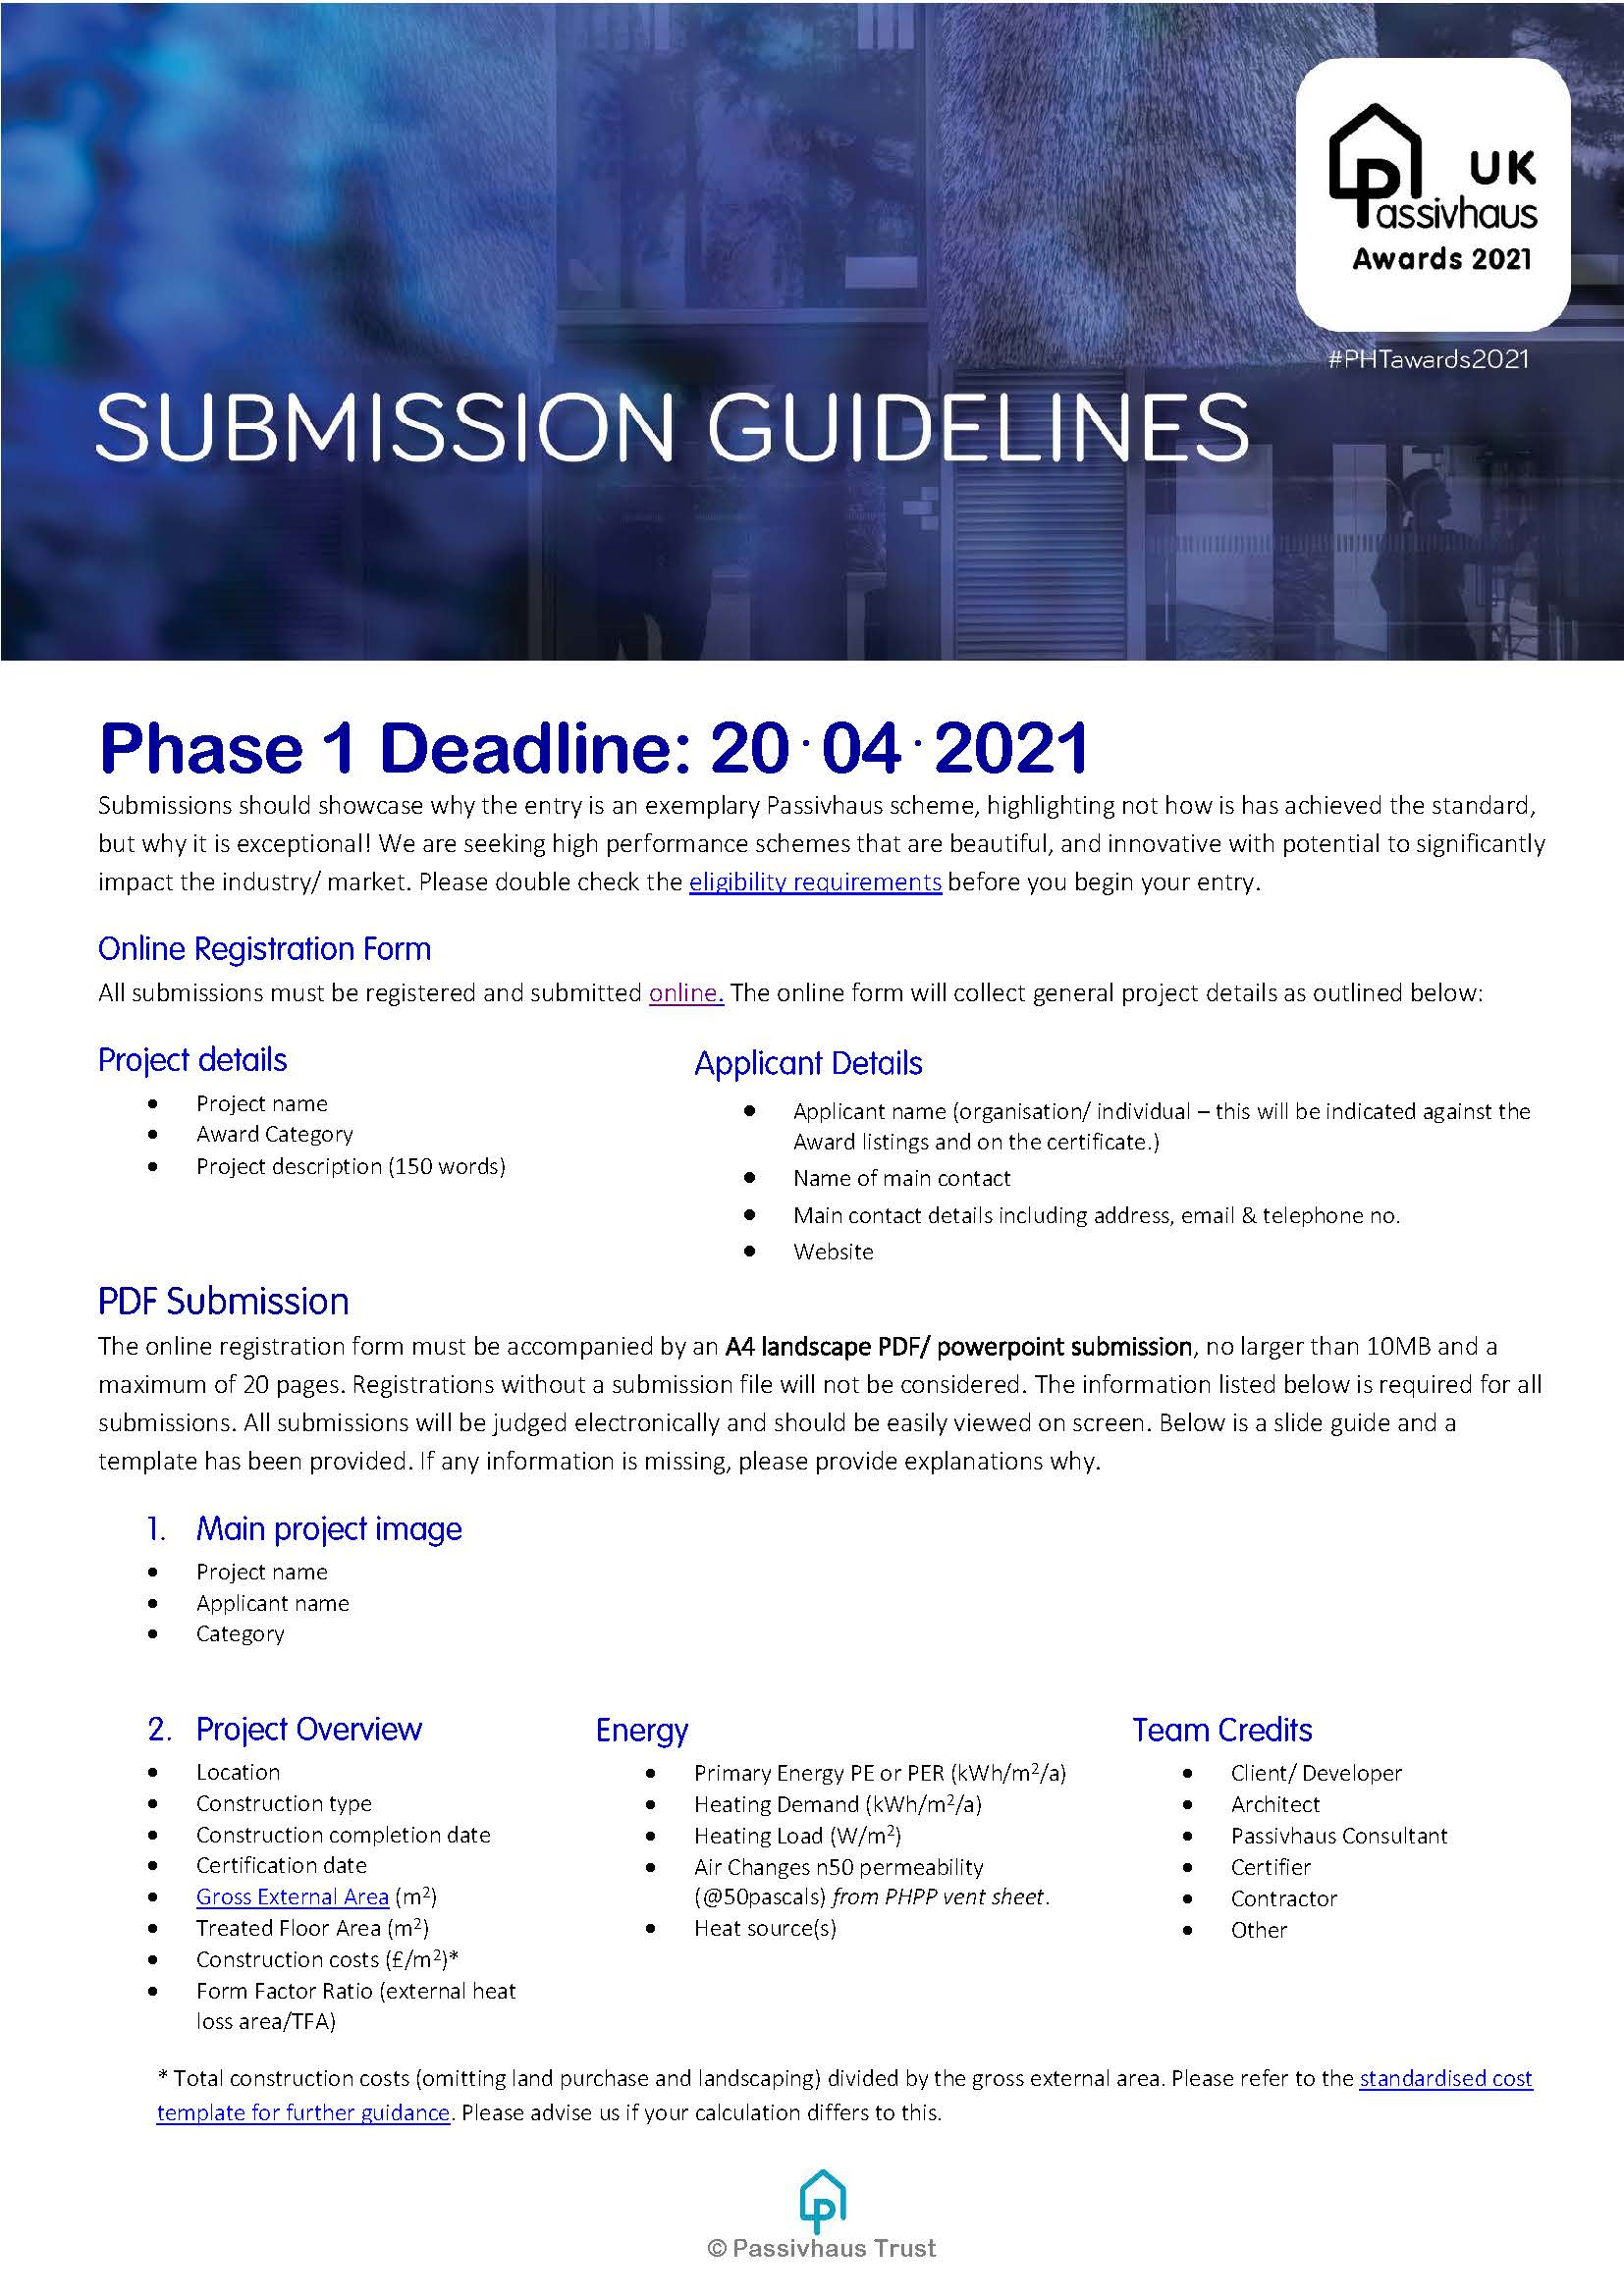 UK Passivhaus Awards 2021 Submission Guidelines